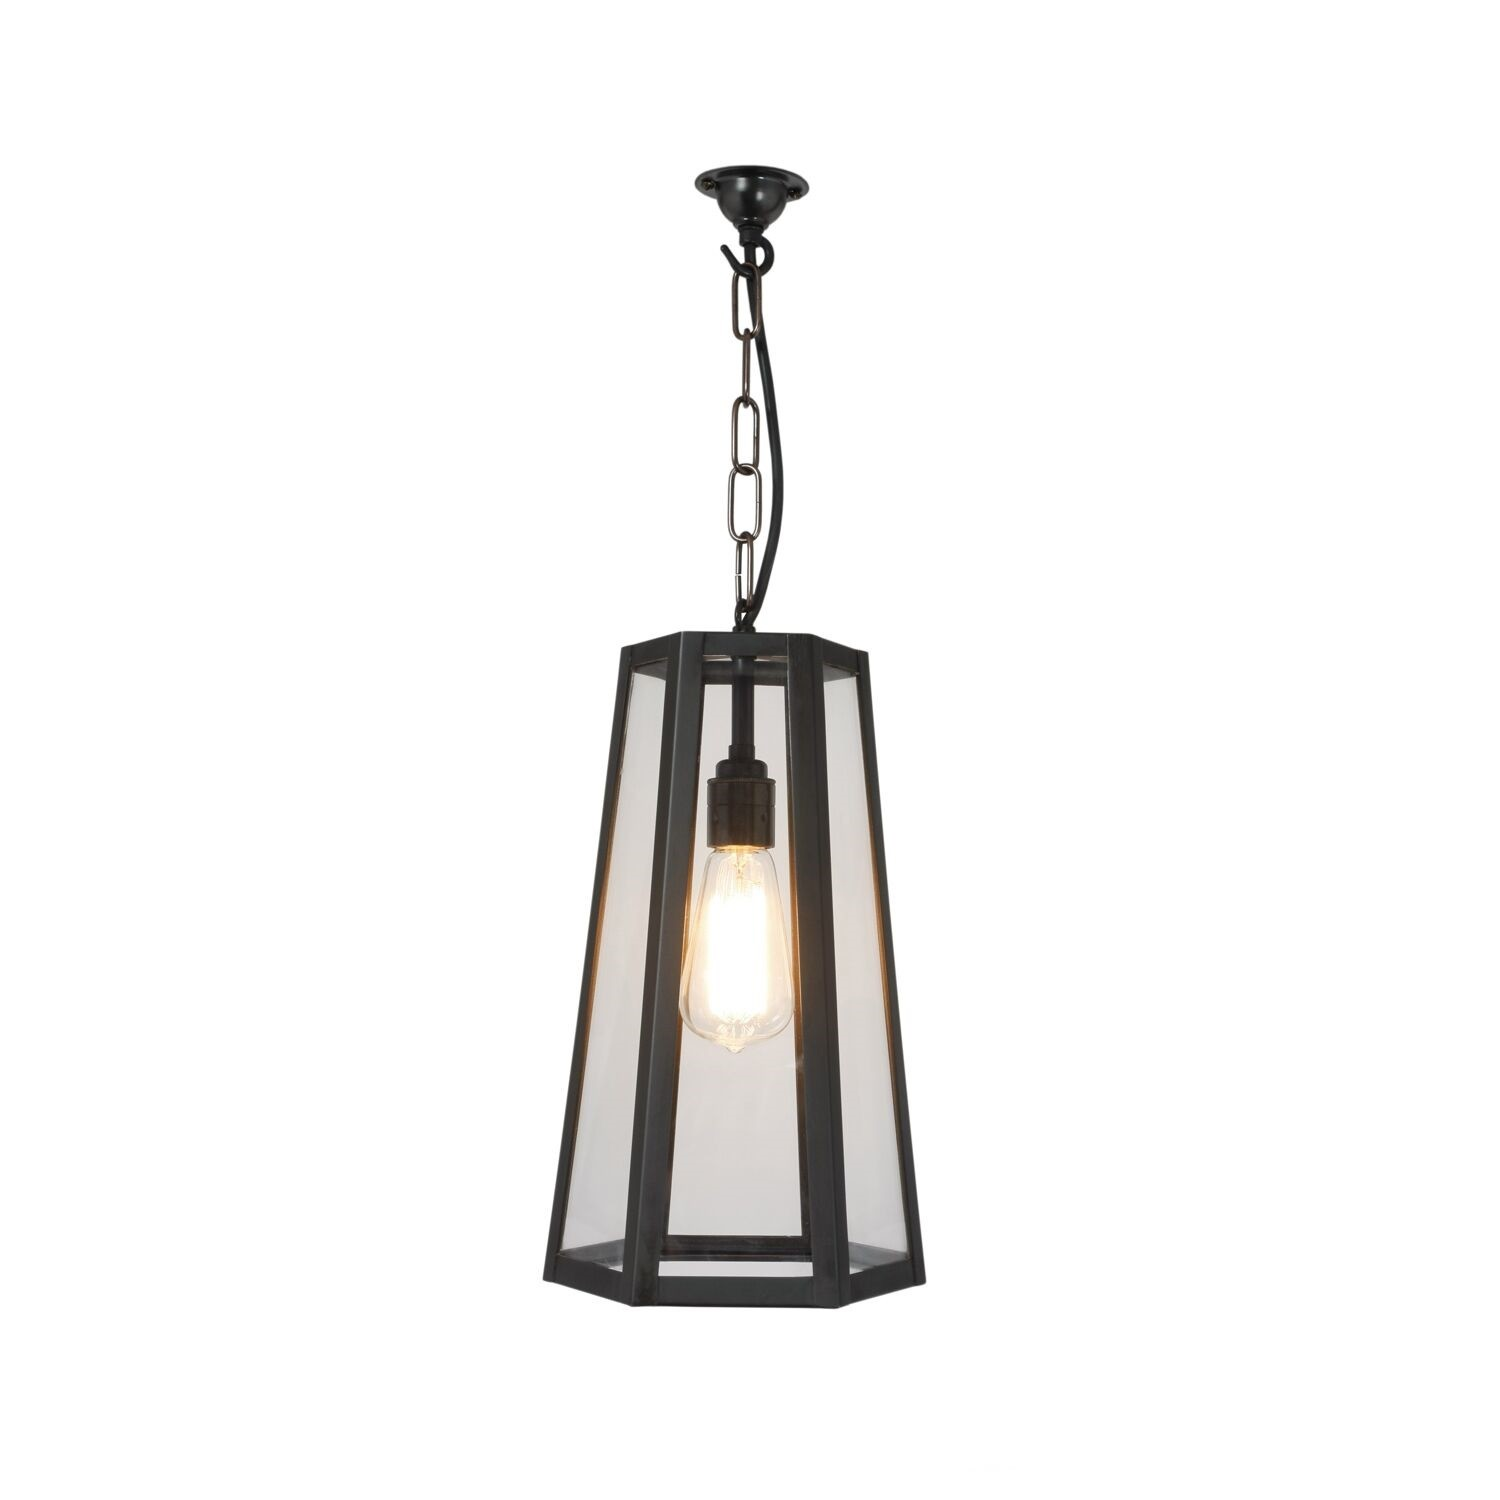 Hex Pendant Light 7651